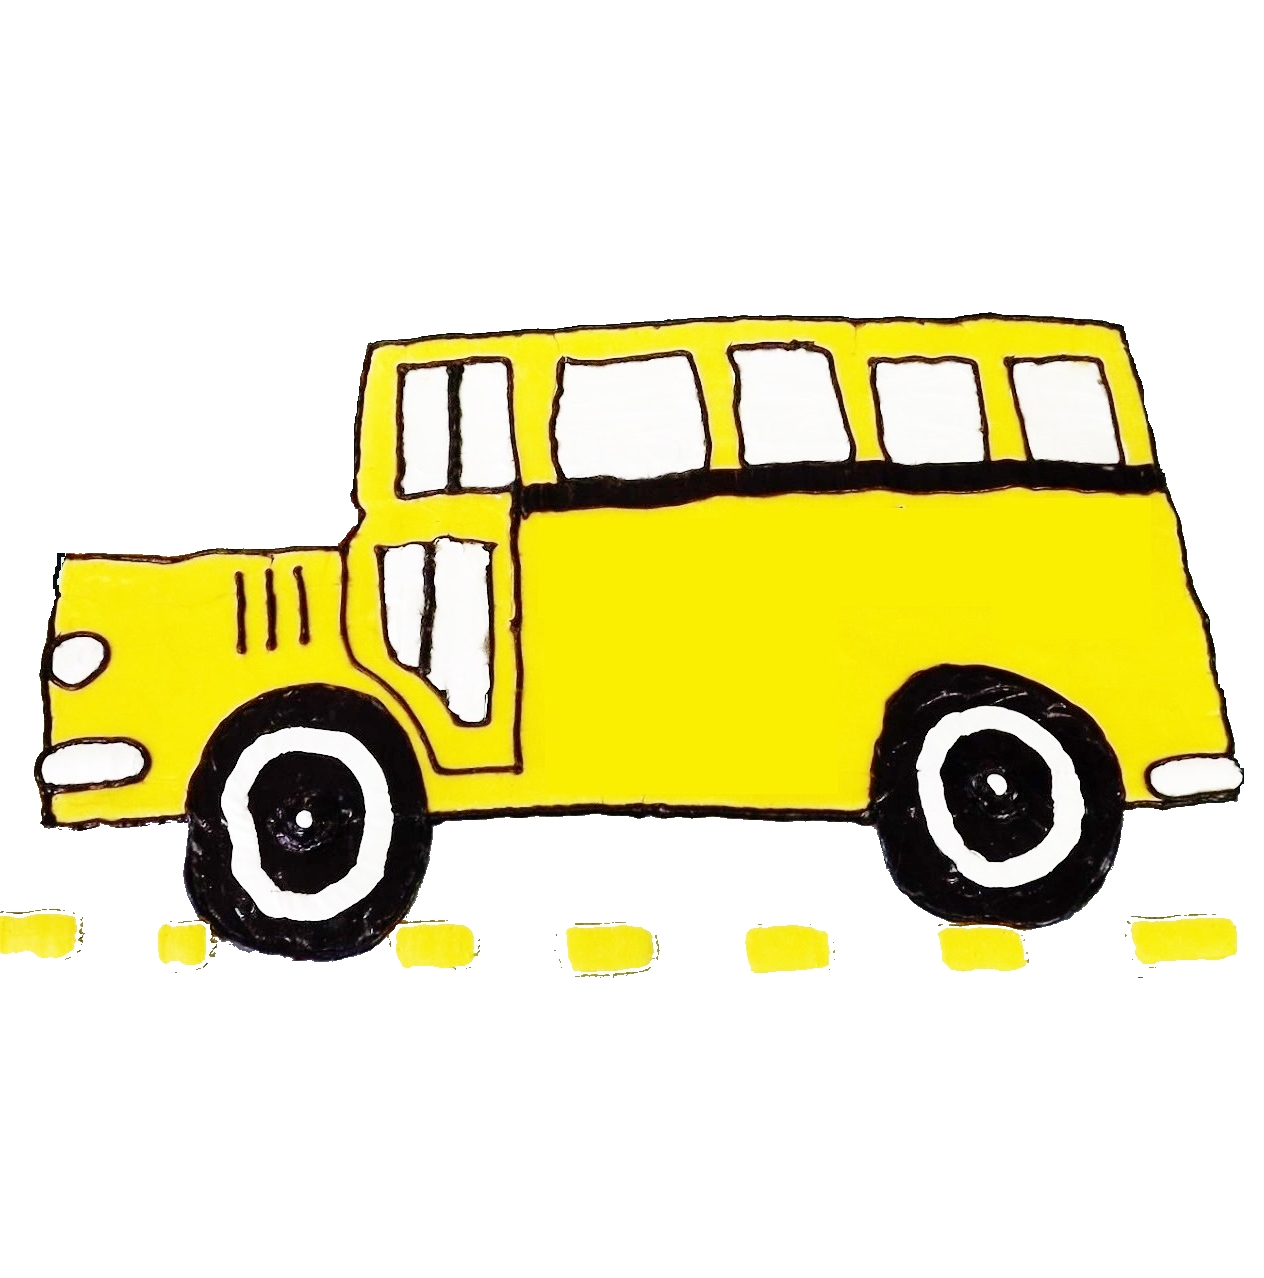 School bus flashing yellow light clipart clipart freeuse stock Pincher Creek Voice: Think of us on the yellow bus clipart freeuse stock